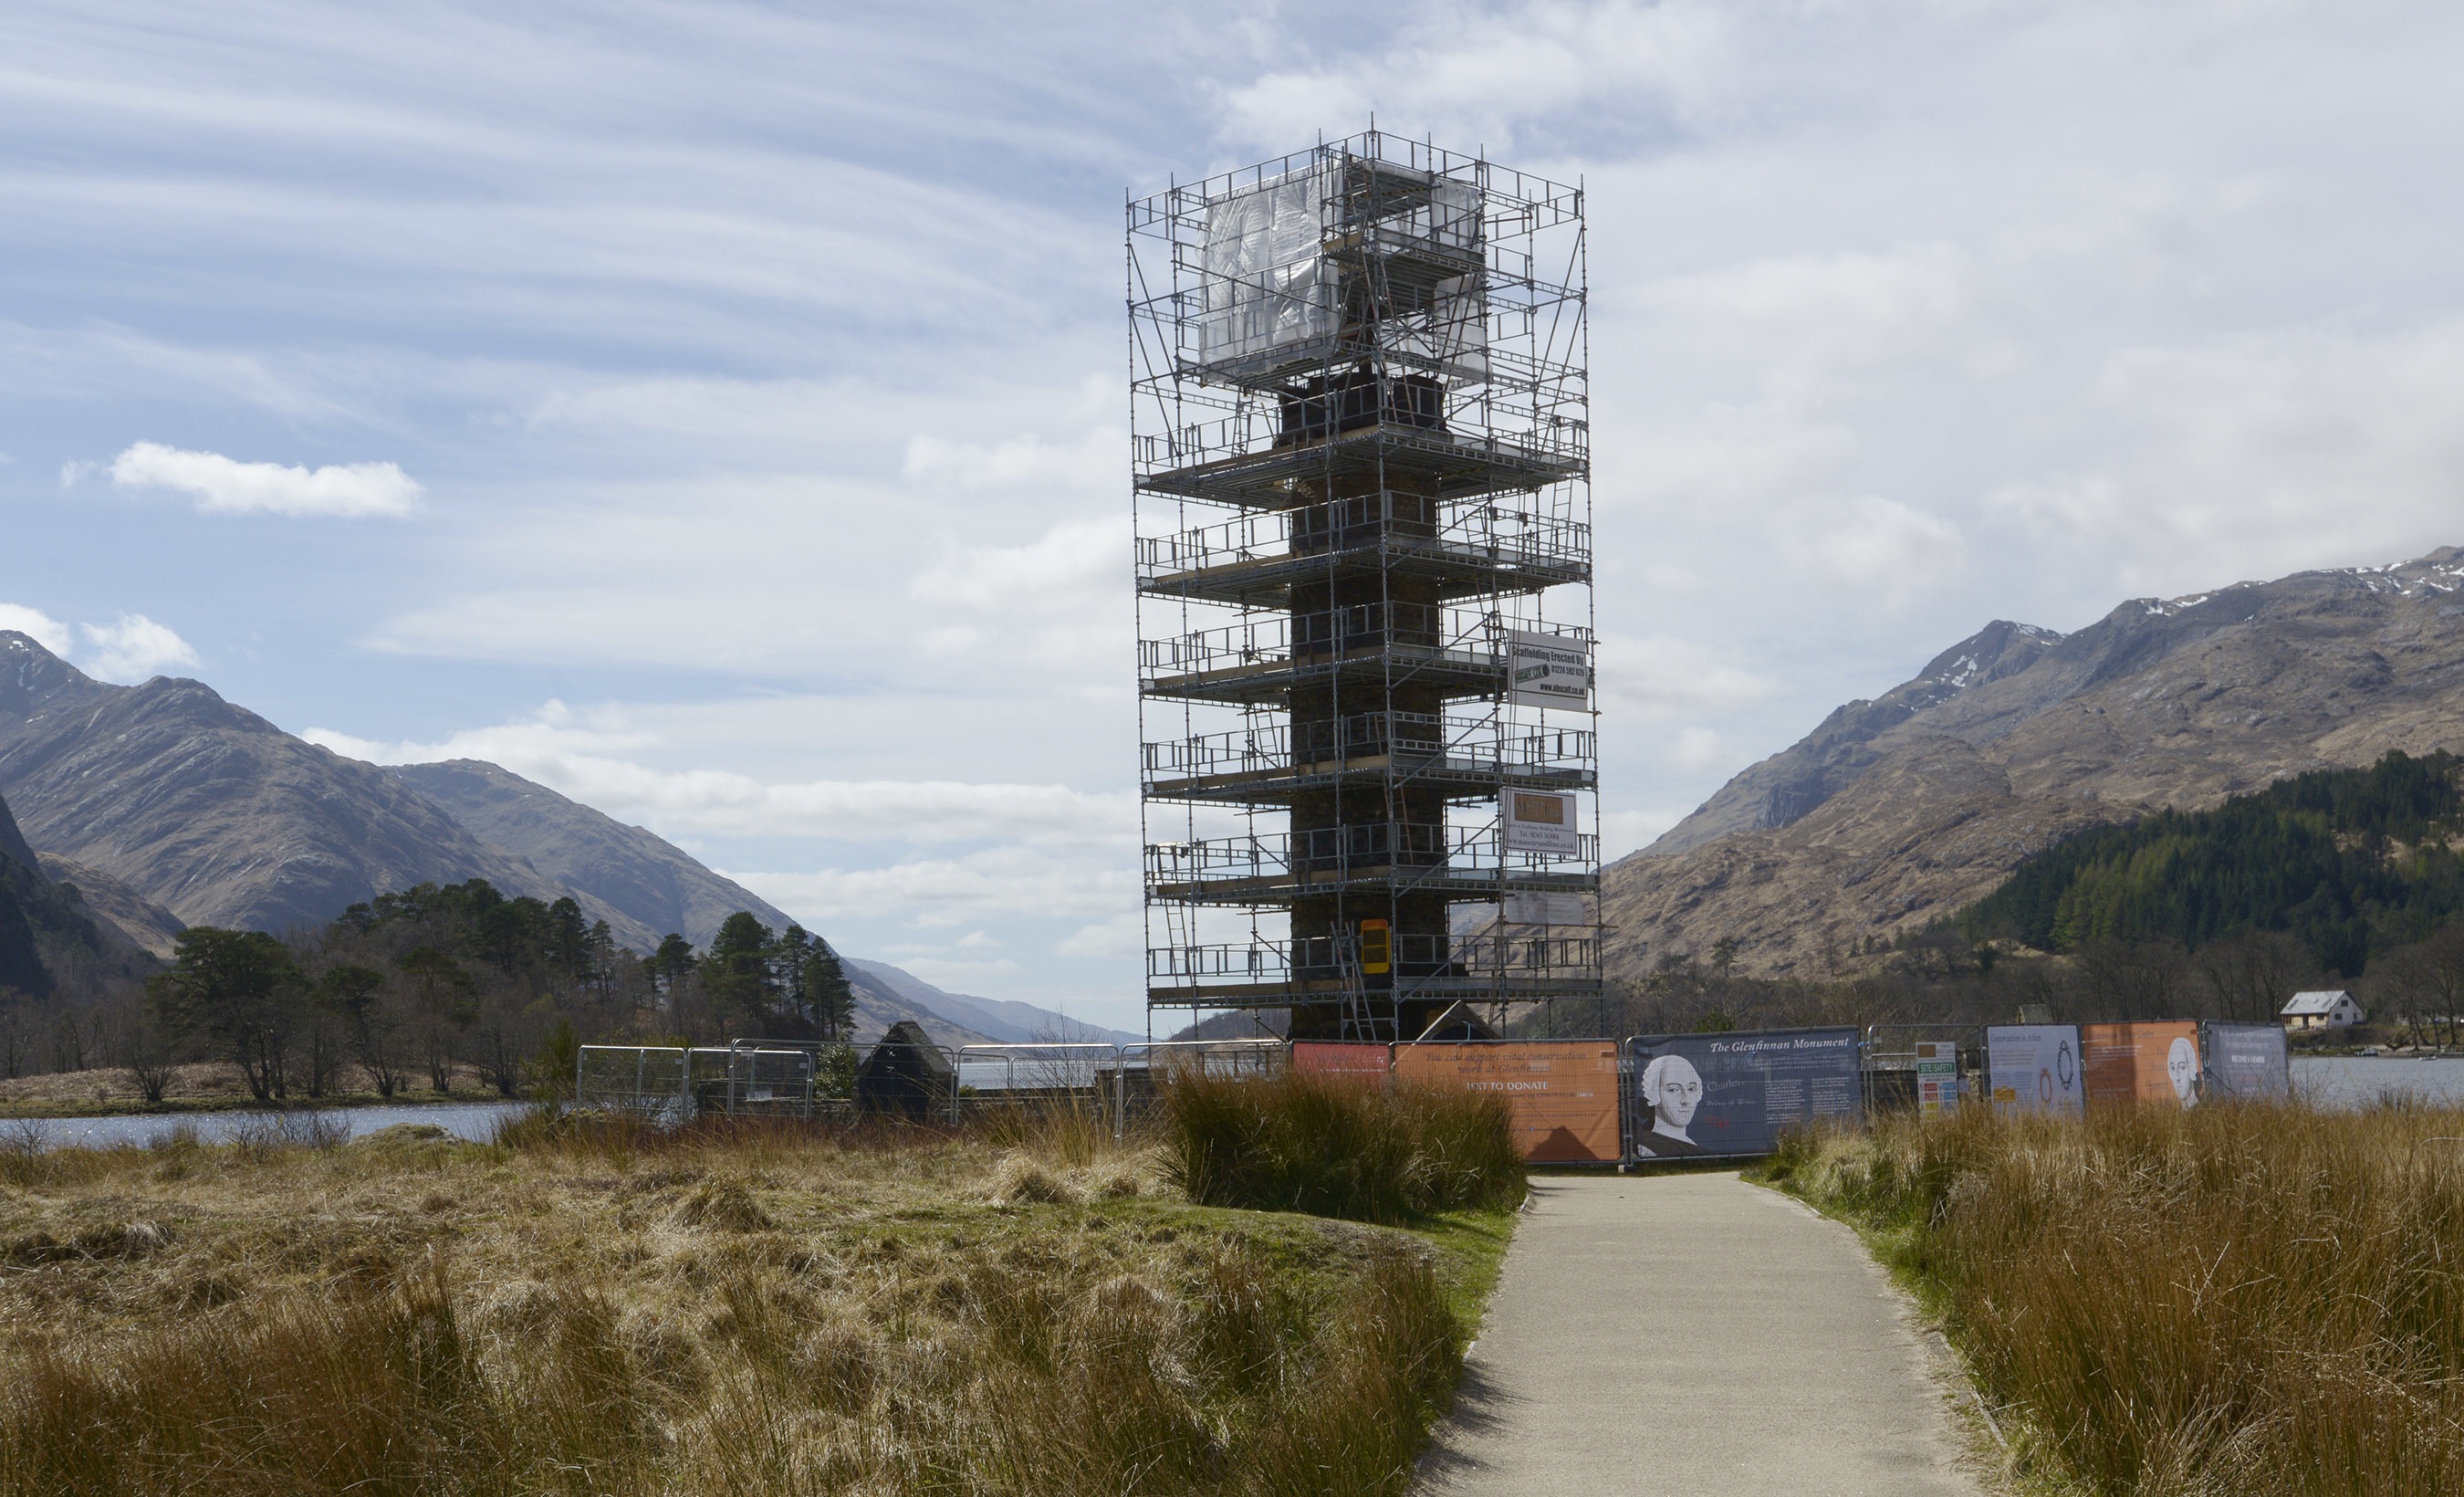 The historic Glenfinnan Monument shrouded in scaffolding during its refurbishment